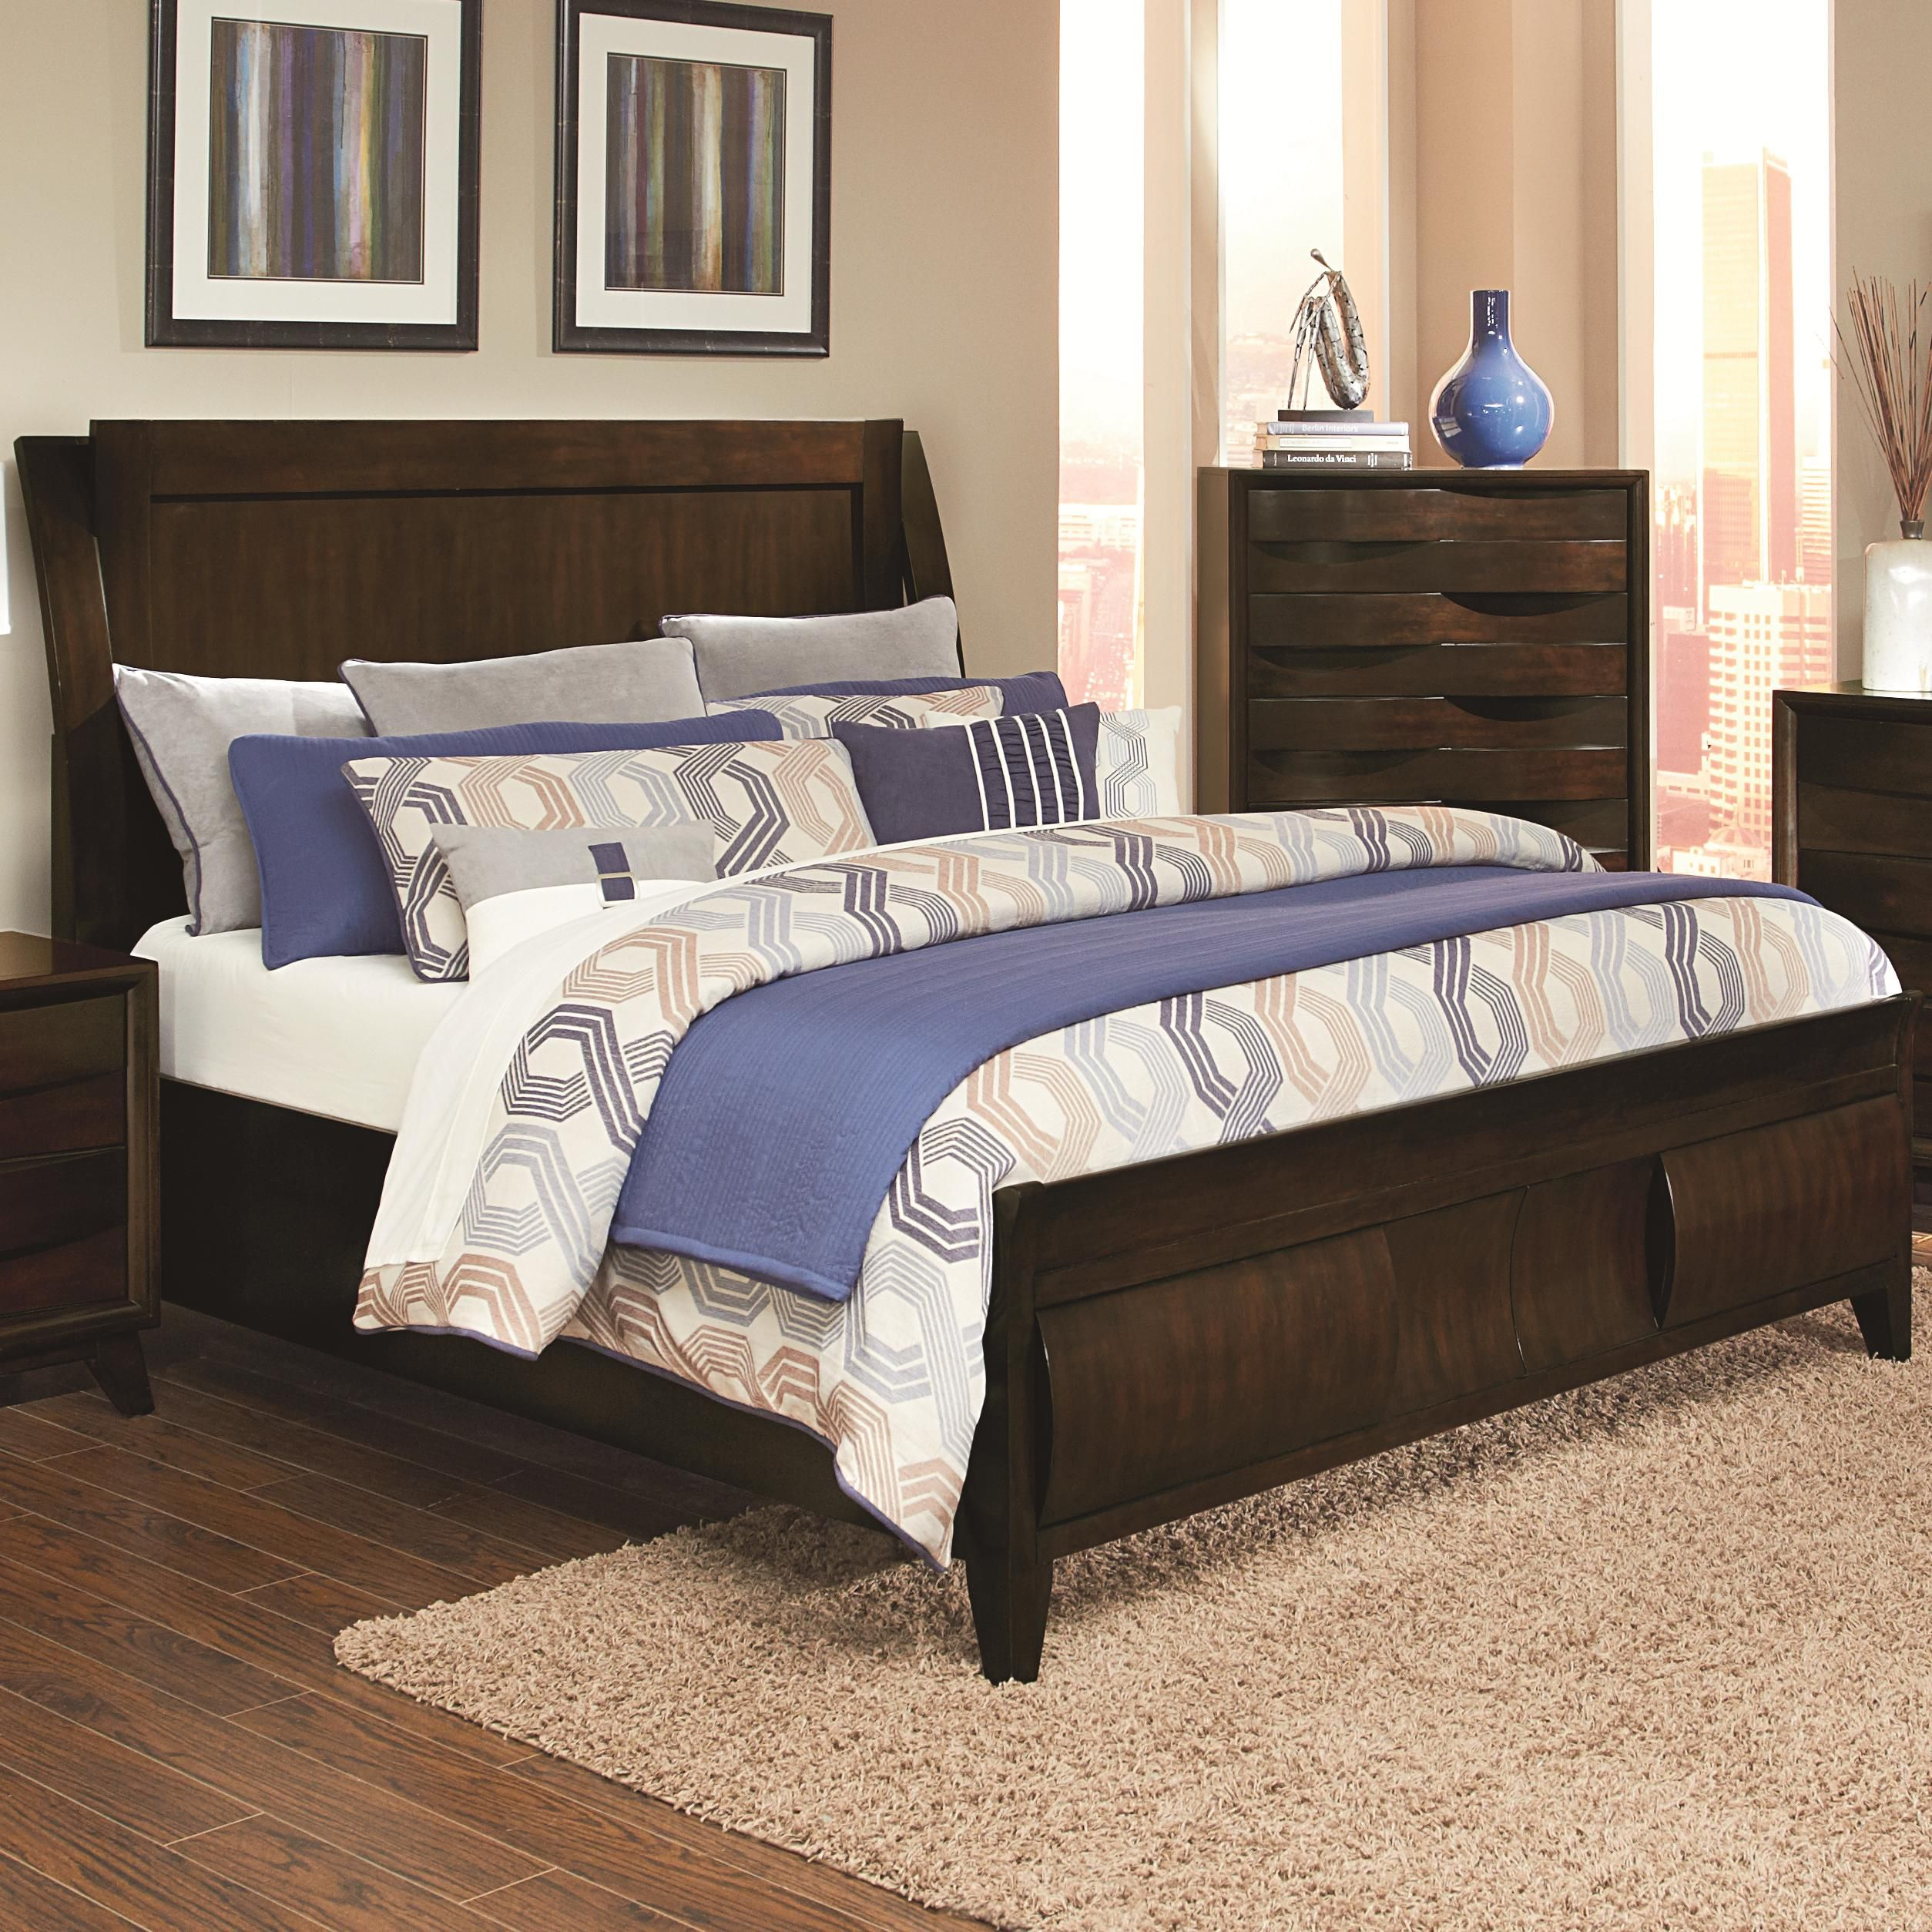 Queen Headboard and Footboard Panel Bed (With images